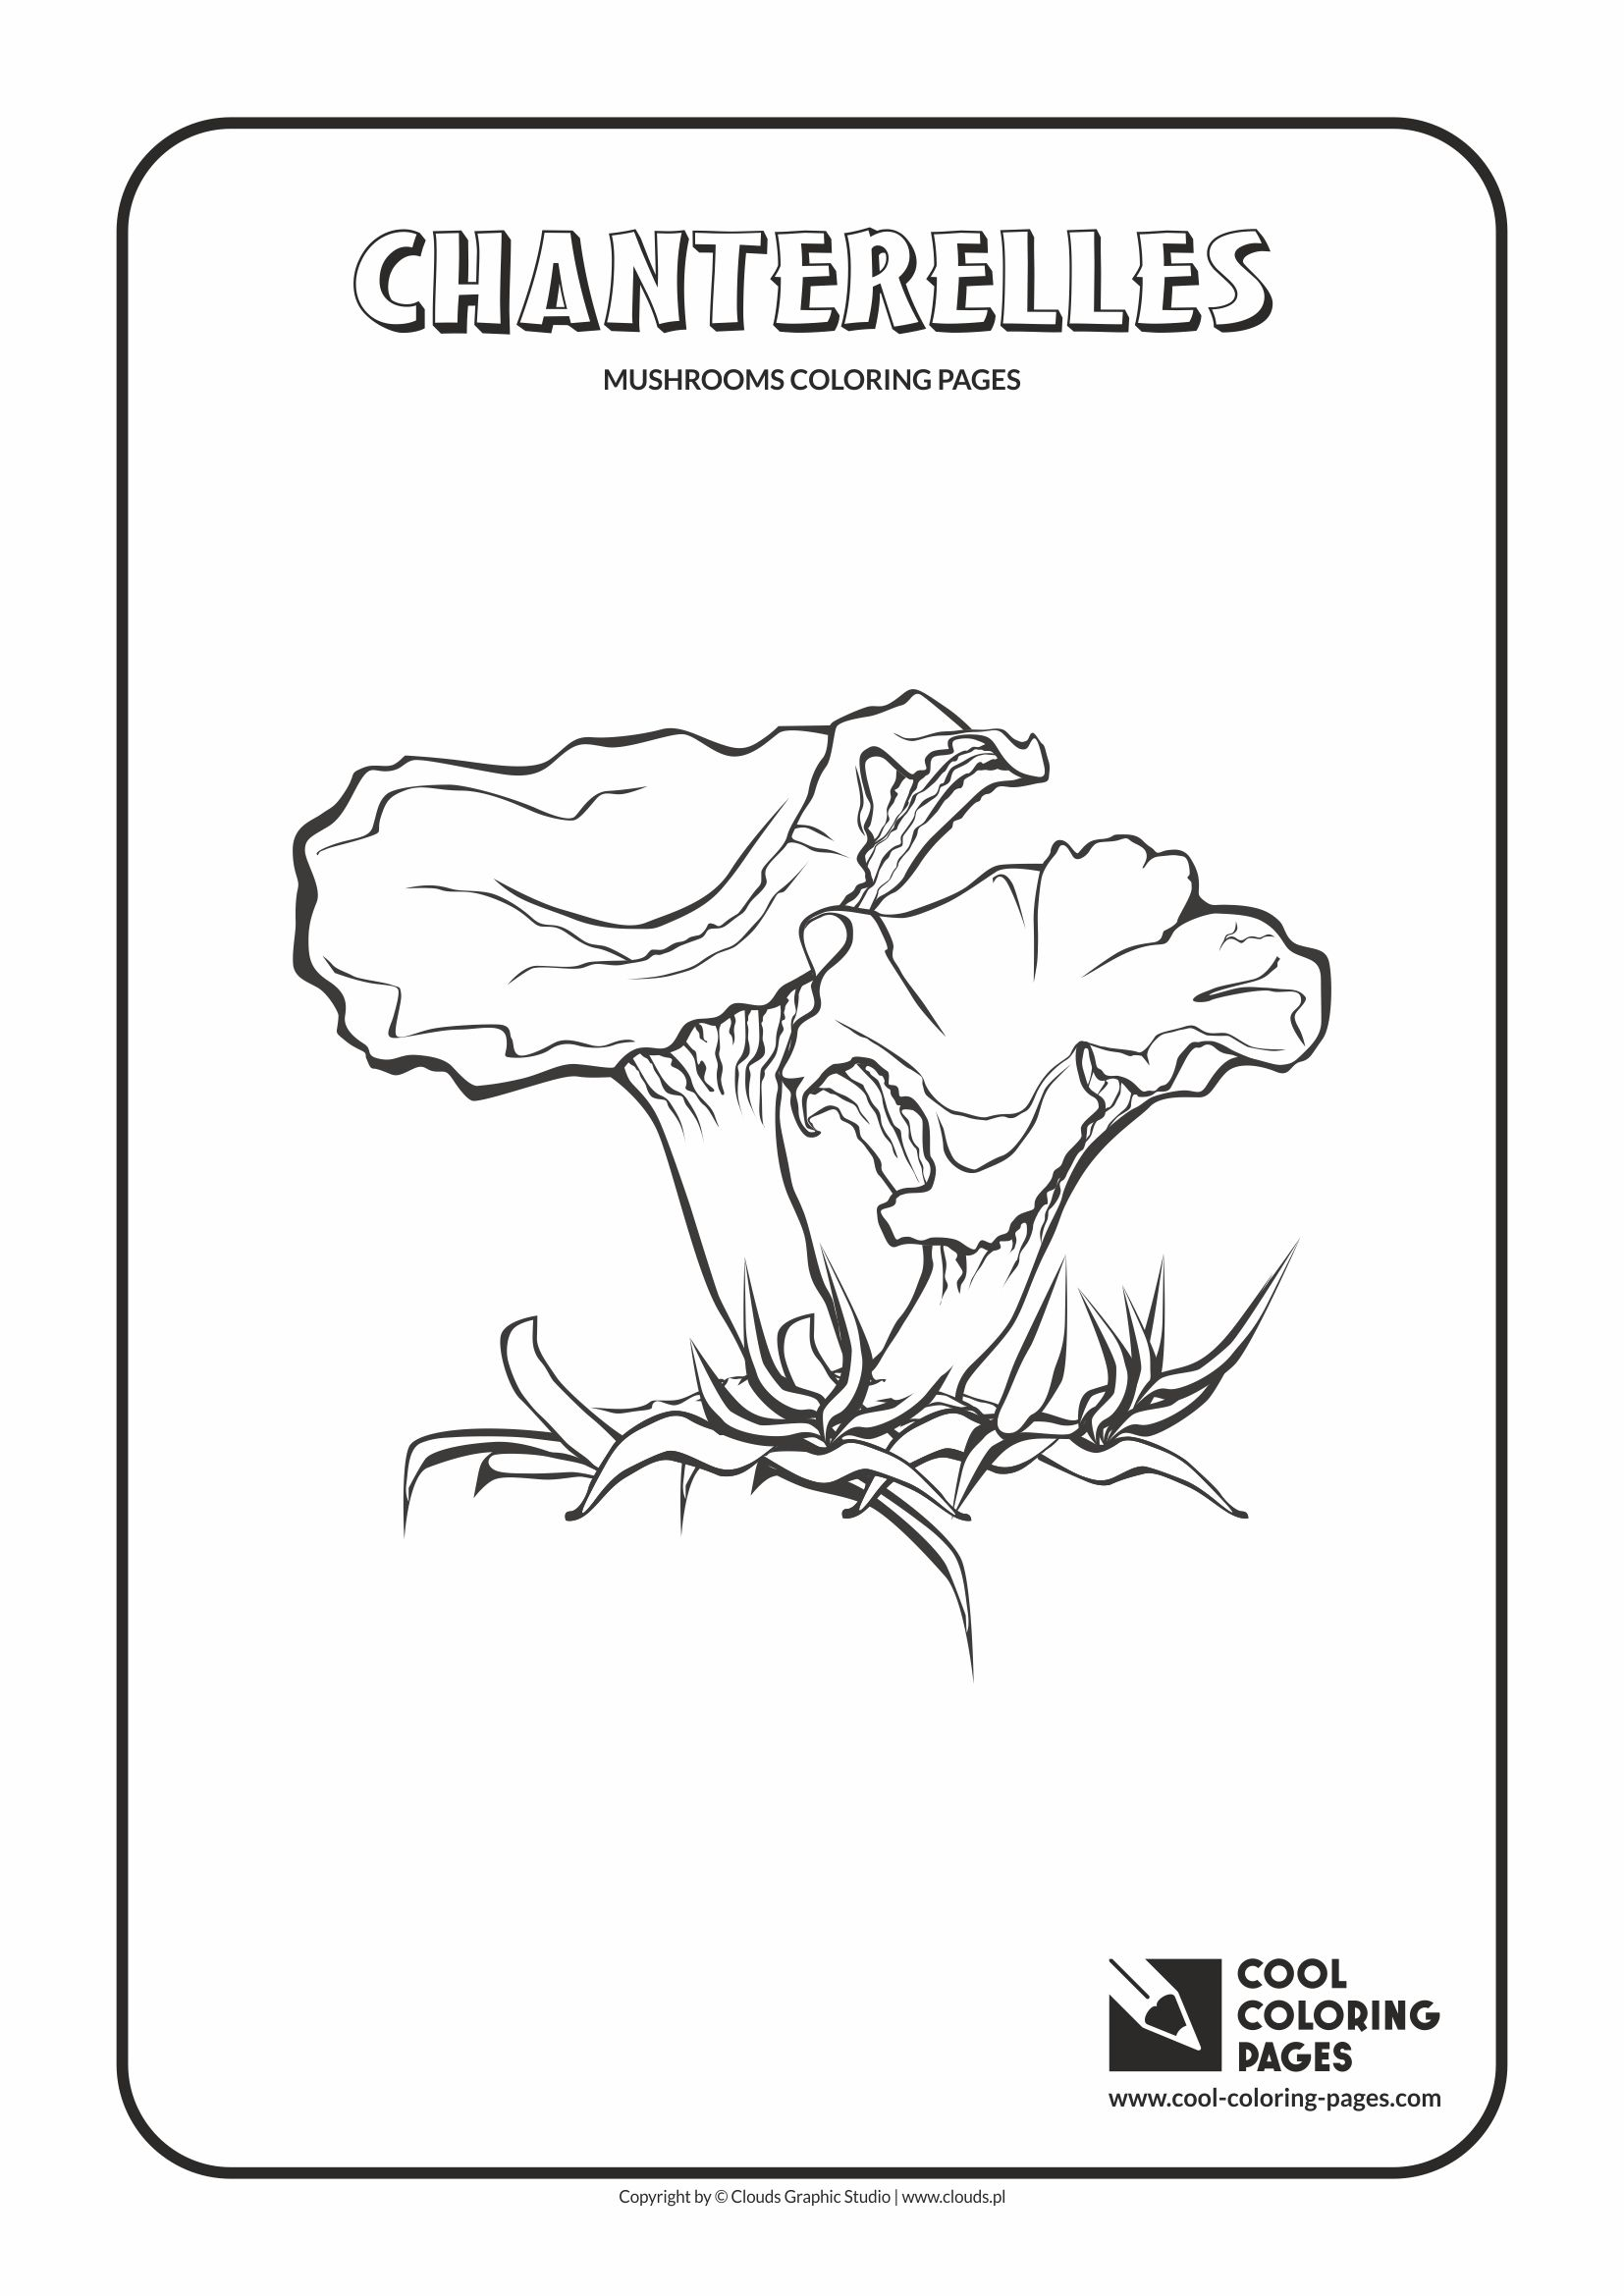 Cool Coloring Pages - Mushrooms / Chanterelles / Coloring page with chanterelles